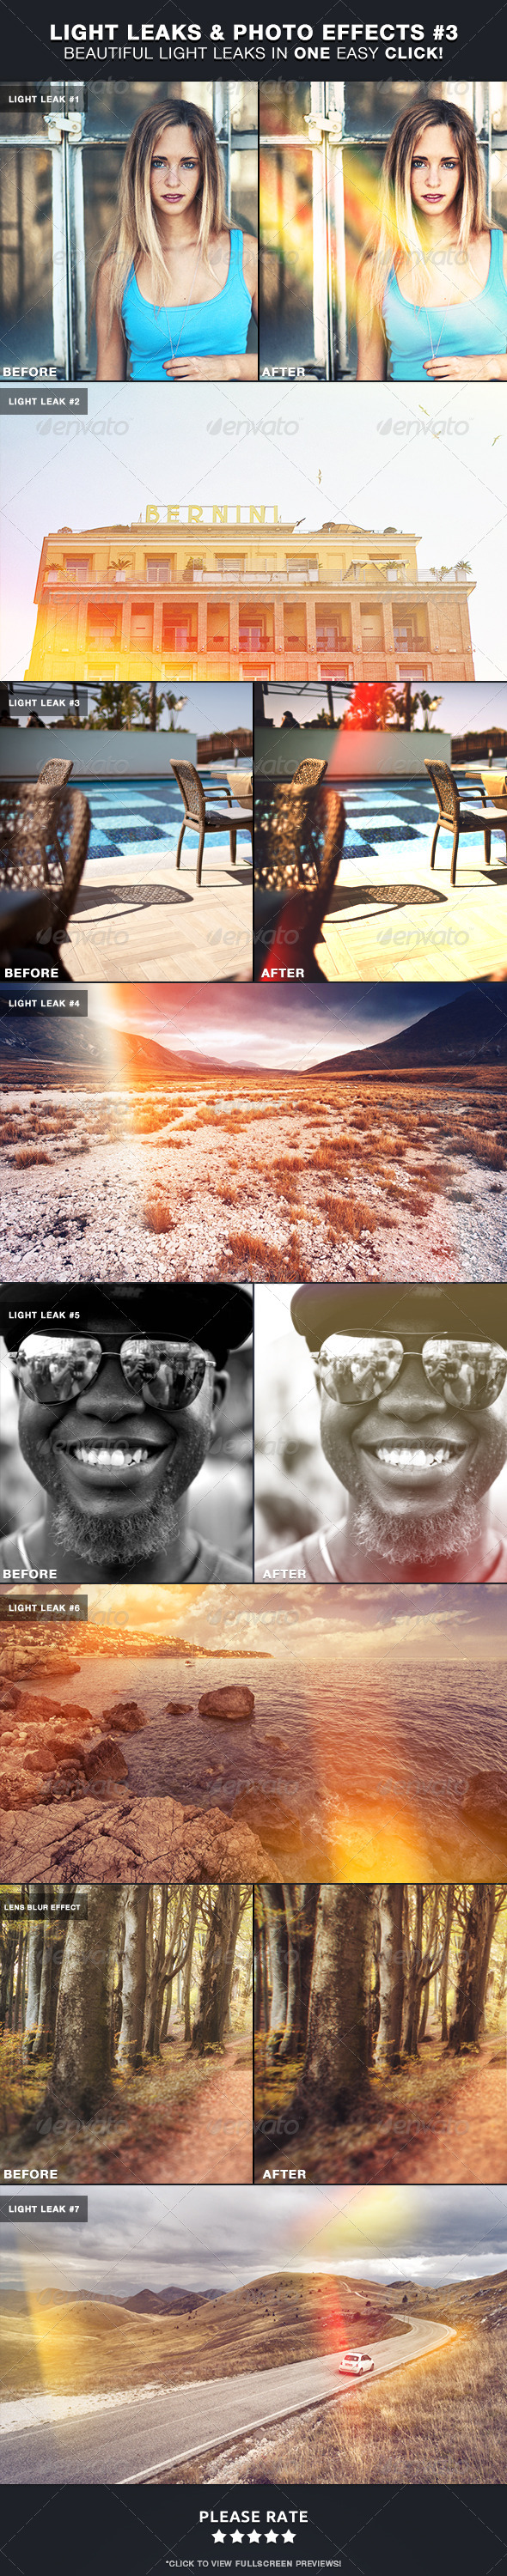 GraphicRiver Light Leaks & Photo Effects #3 5581940